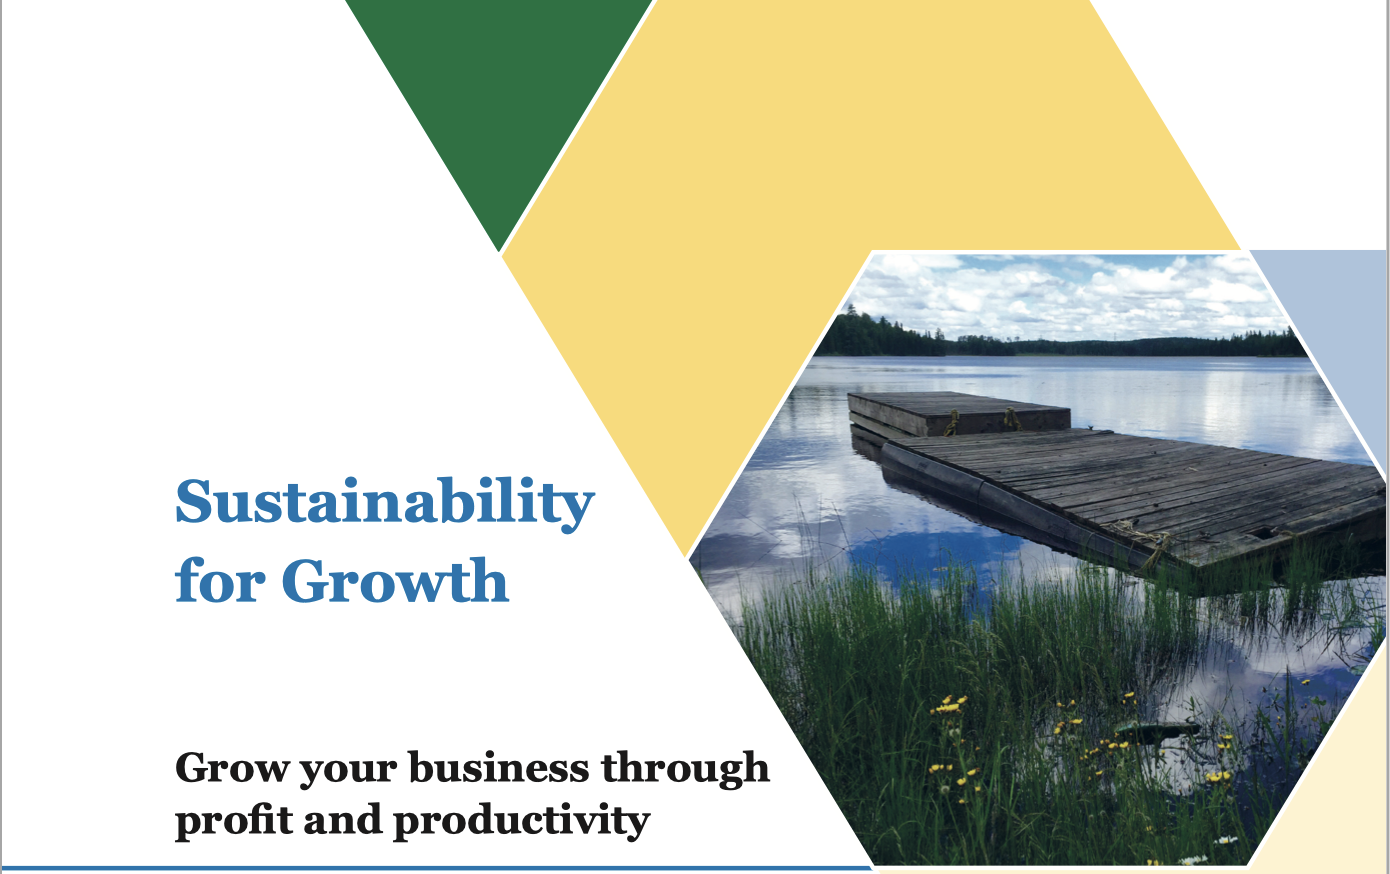 Sustainability for Growth brochure